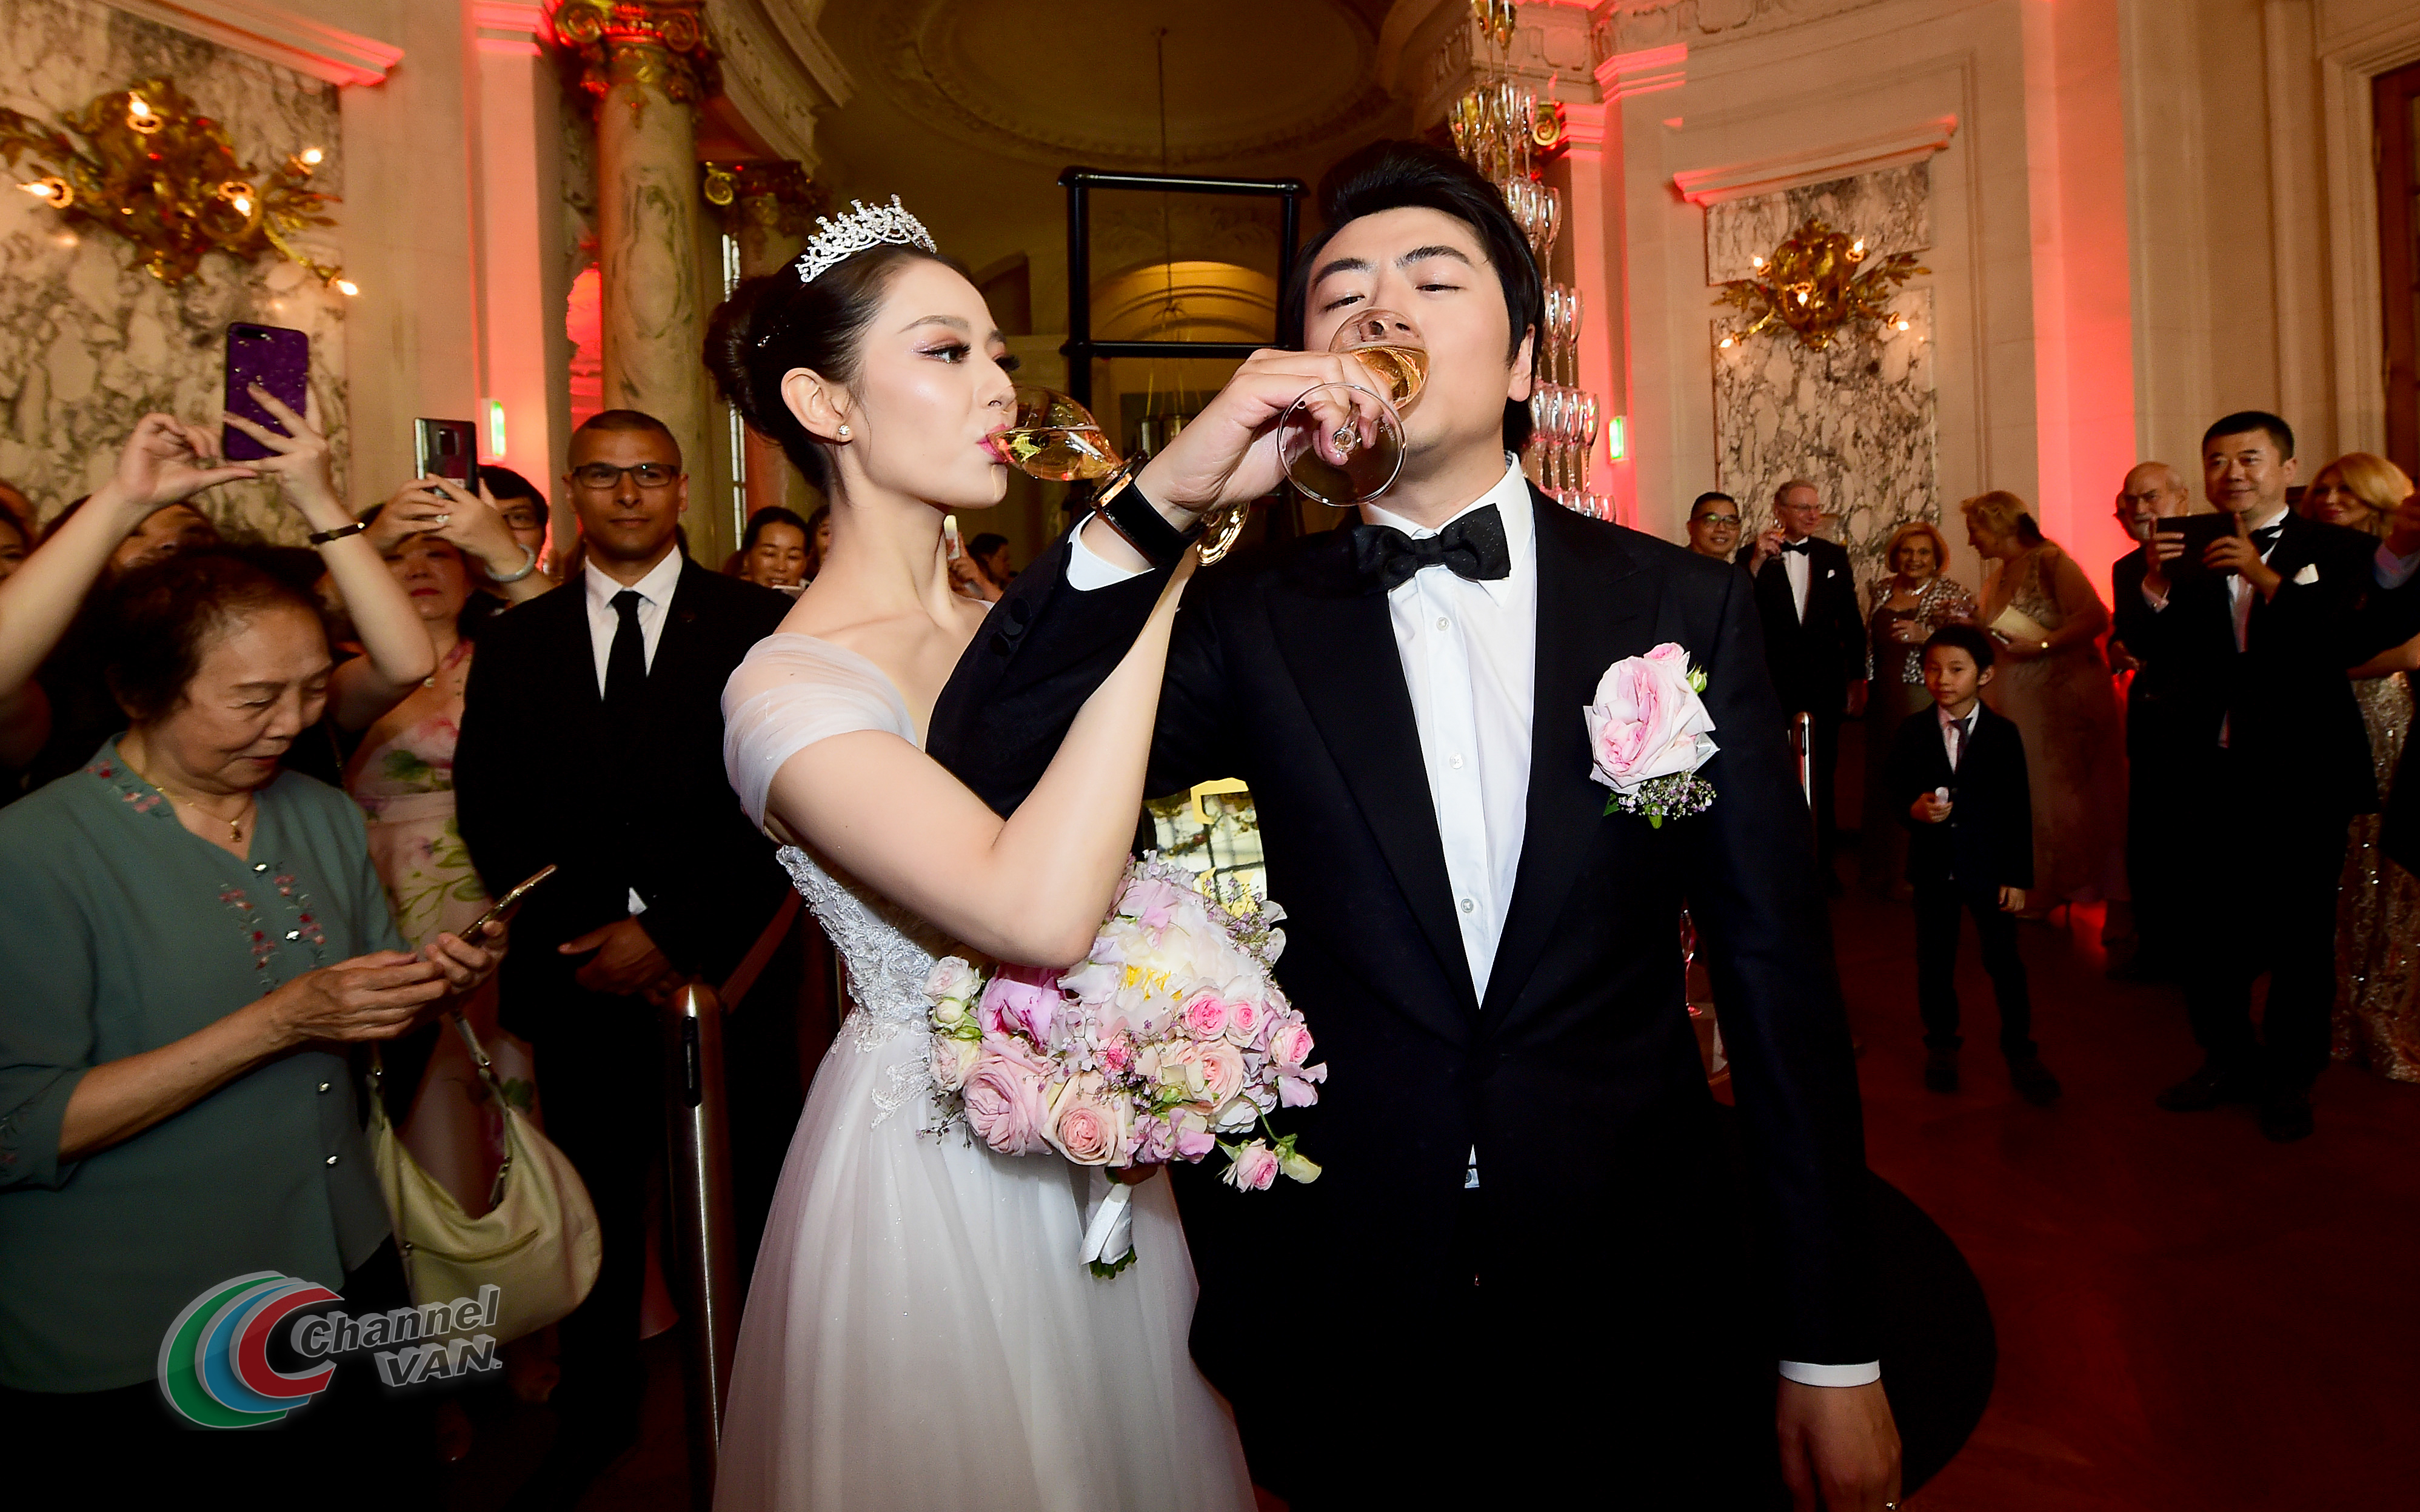 PARIS, FRANCE - JUNE 02: Pianists Lang Lang & Gina Alice drink a glass of Moet et Chandon Champagne during their Cocktail Wedding at Hotel Shangri-La on June 02, 2019 in Paris, France. (Photo by Anthony Ghnassia/Getty Images for Moet Henessy)